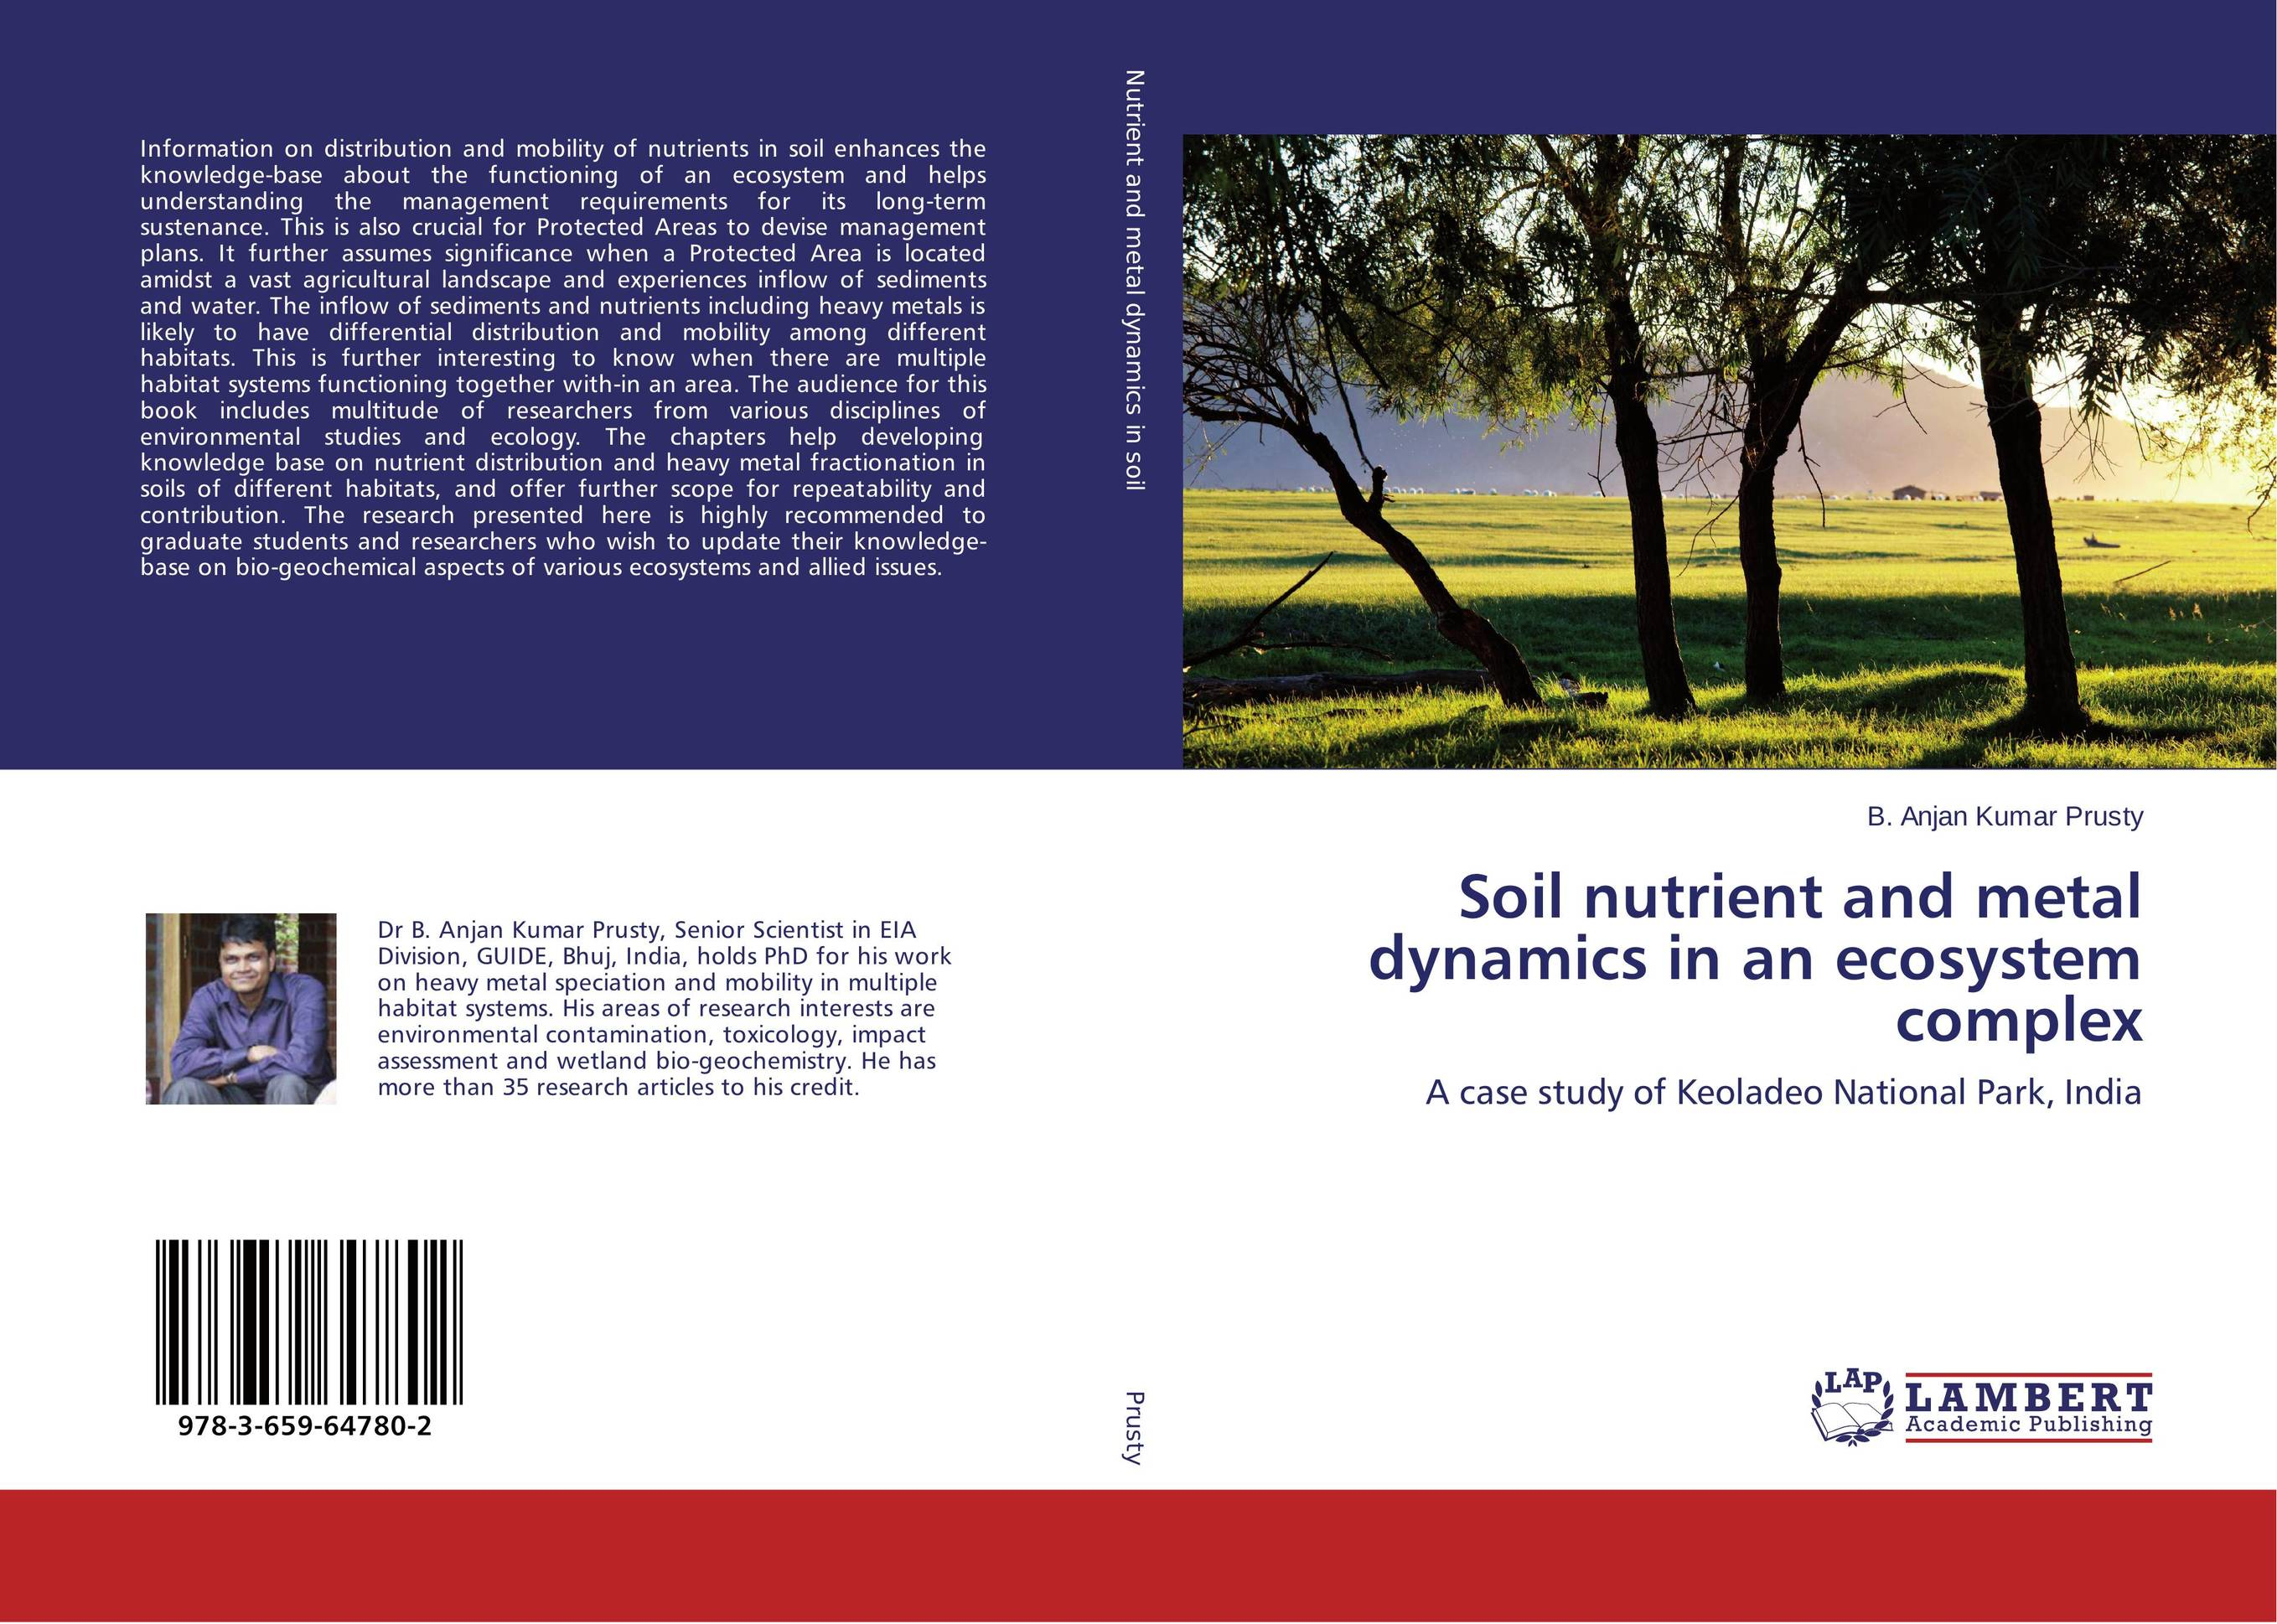 Soil nutrient and metal dynamics in an ecosystem complex